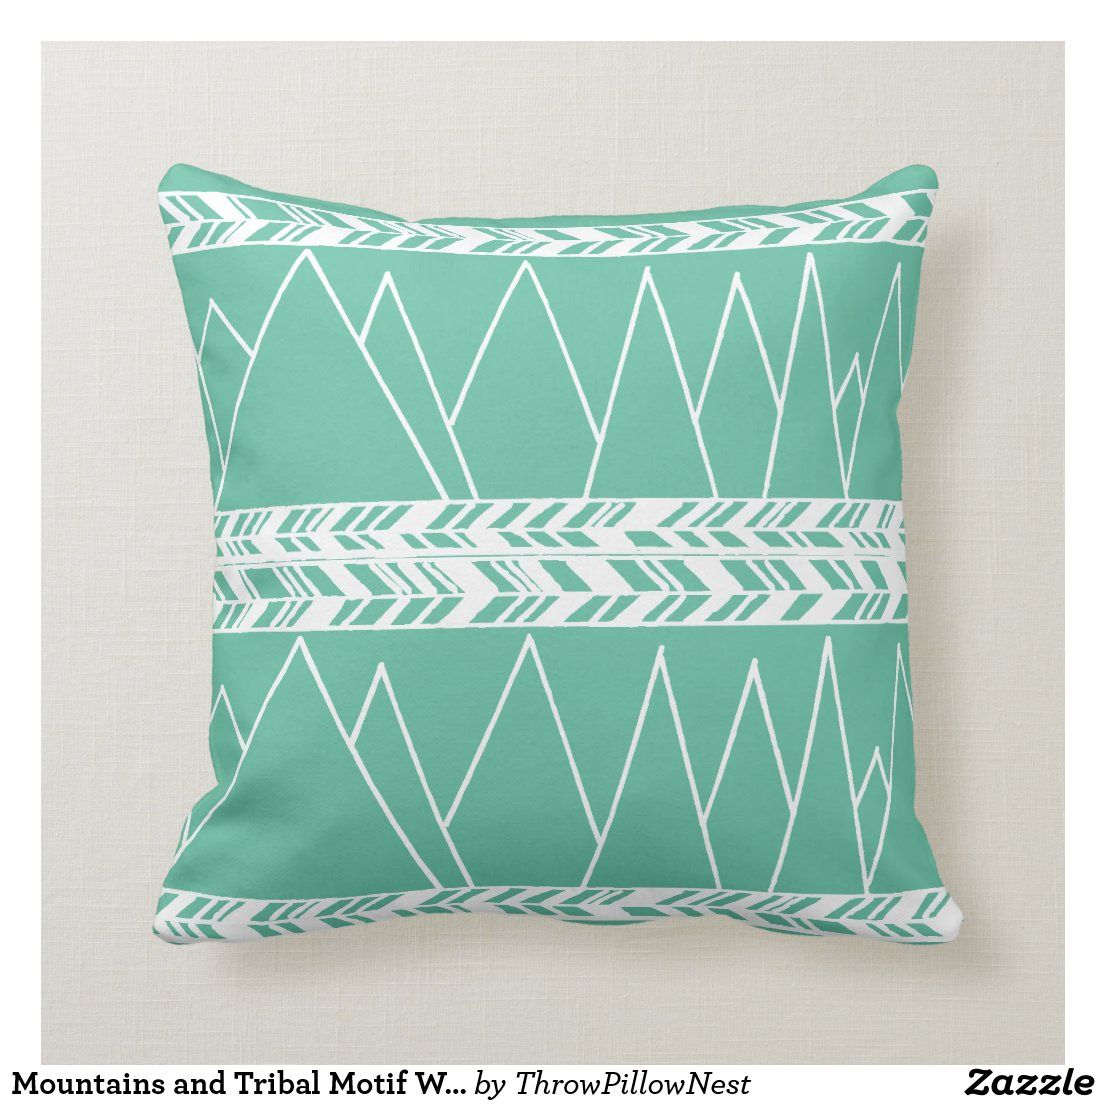 Mountains and Tribal Motif White on Mint Green Throw Pillow